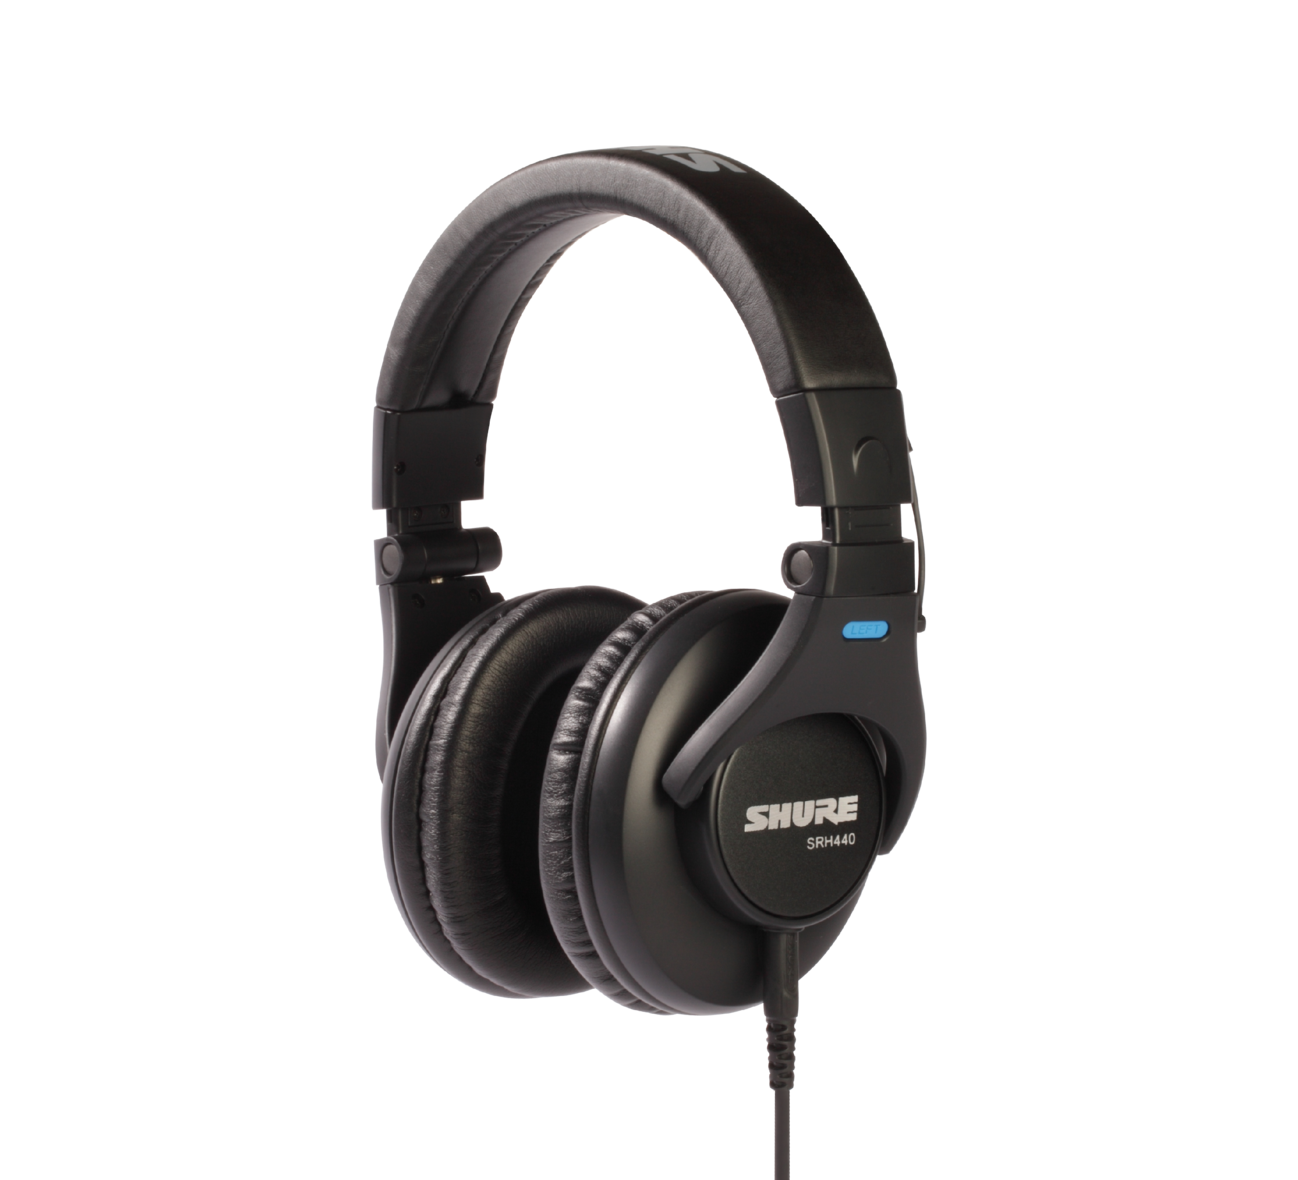 Shure - SRH440 Headphones